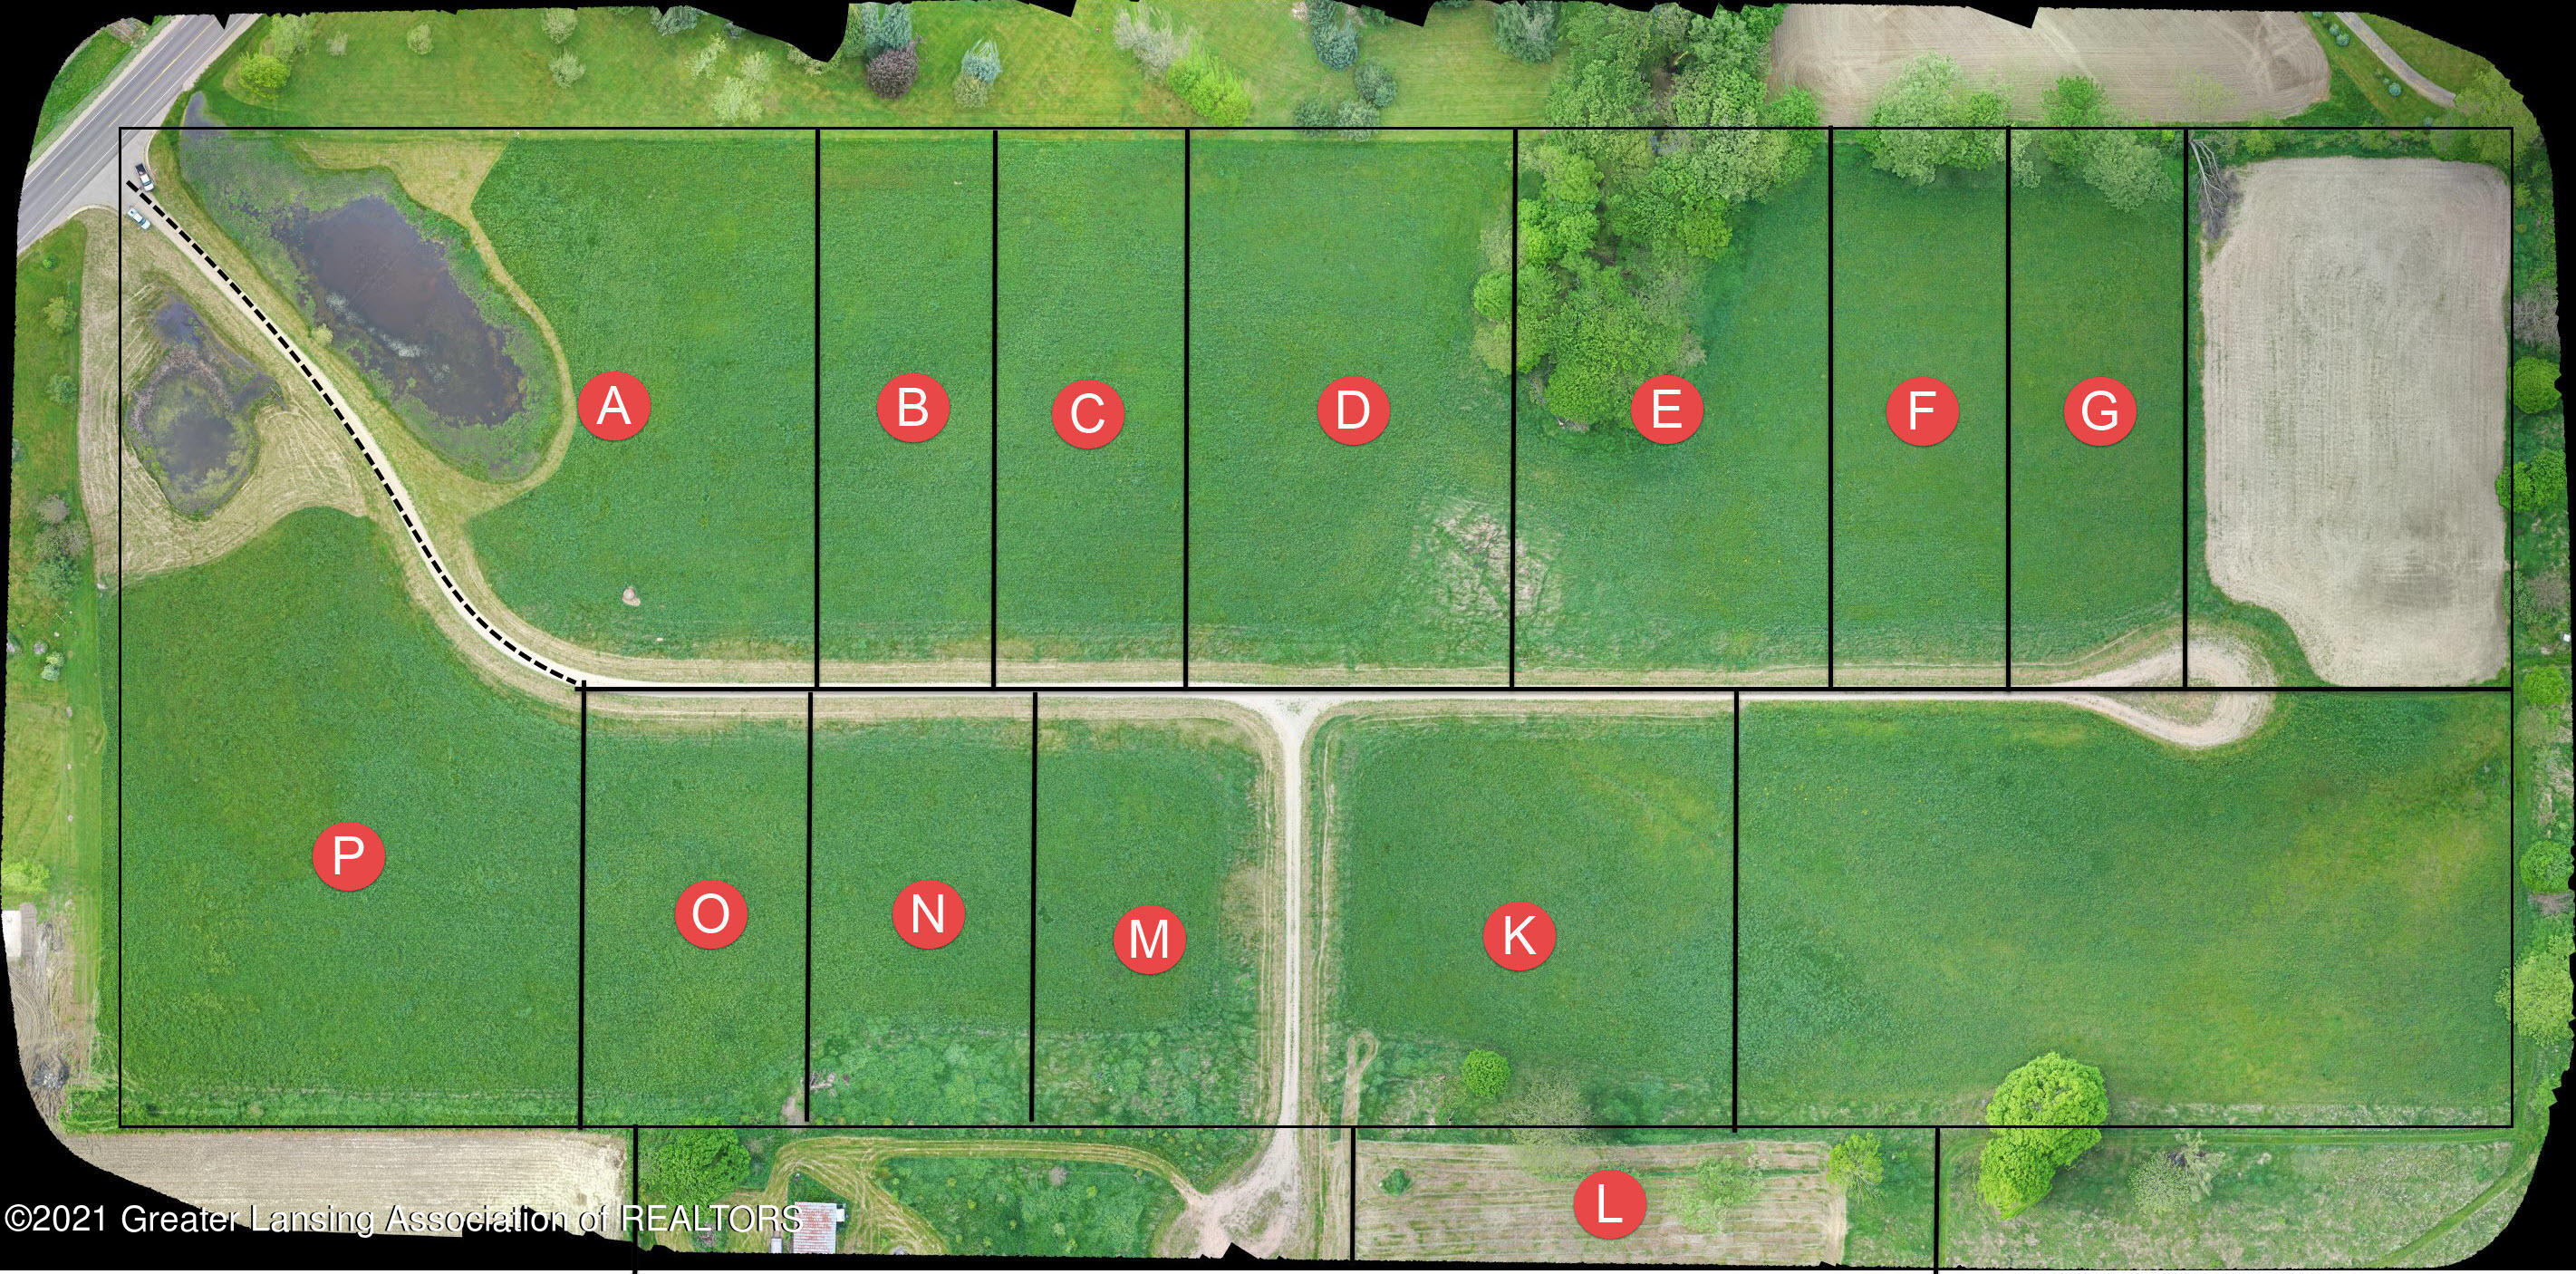 0 Pinebluff Dr., Parcel F - 1 Overview - Pinebluff Estates - 1